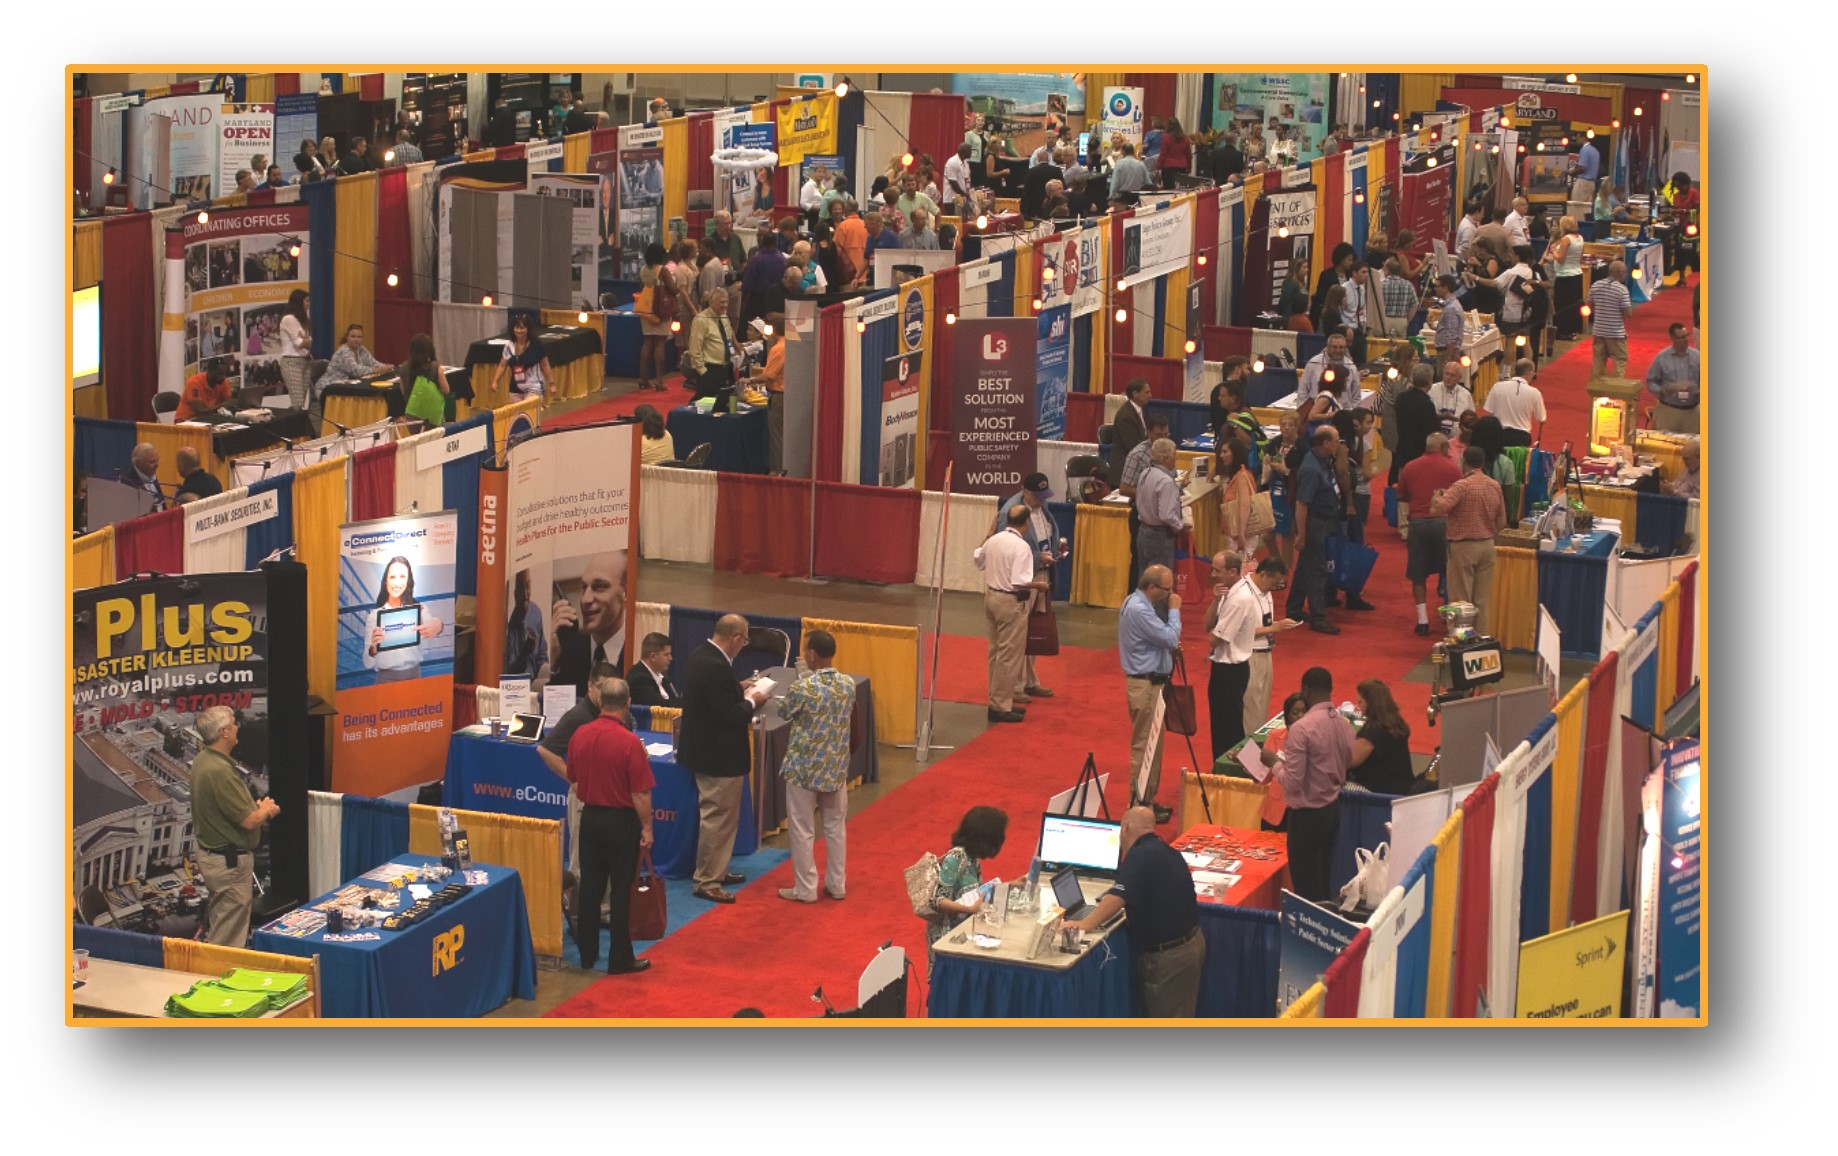 Exhibit hall SC15